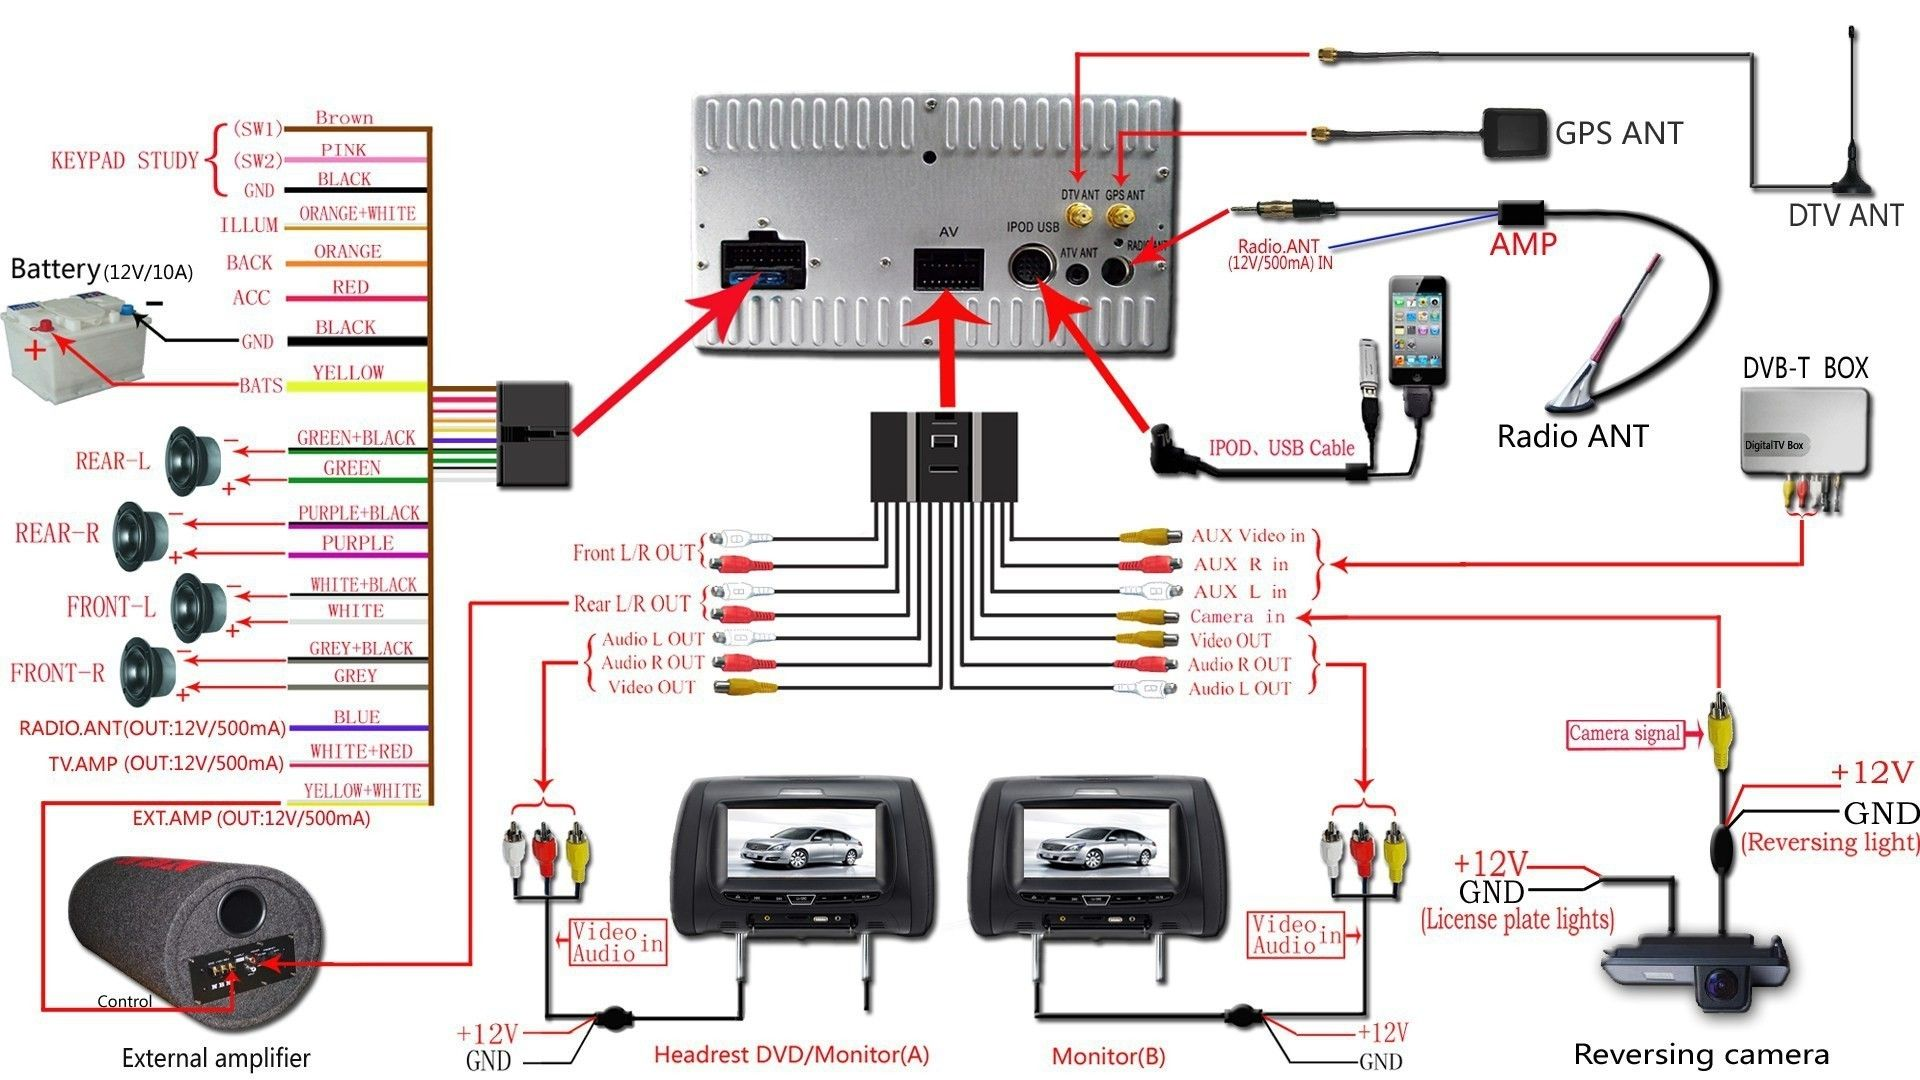 New Wiring Diagram For Dual Car Stereo Diagram Diagramtemplate Diagramsample Car Audio Car Stereo Systems Car Stereo